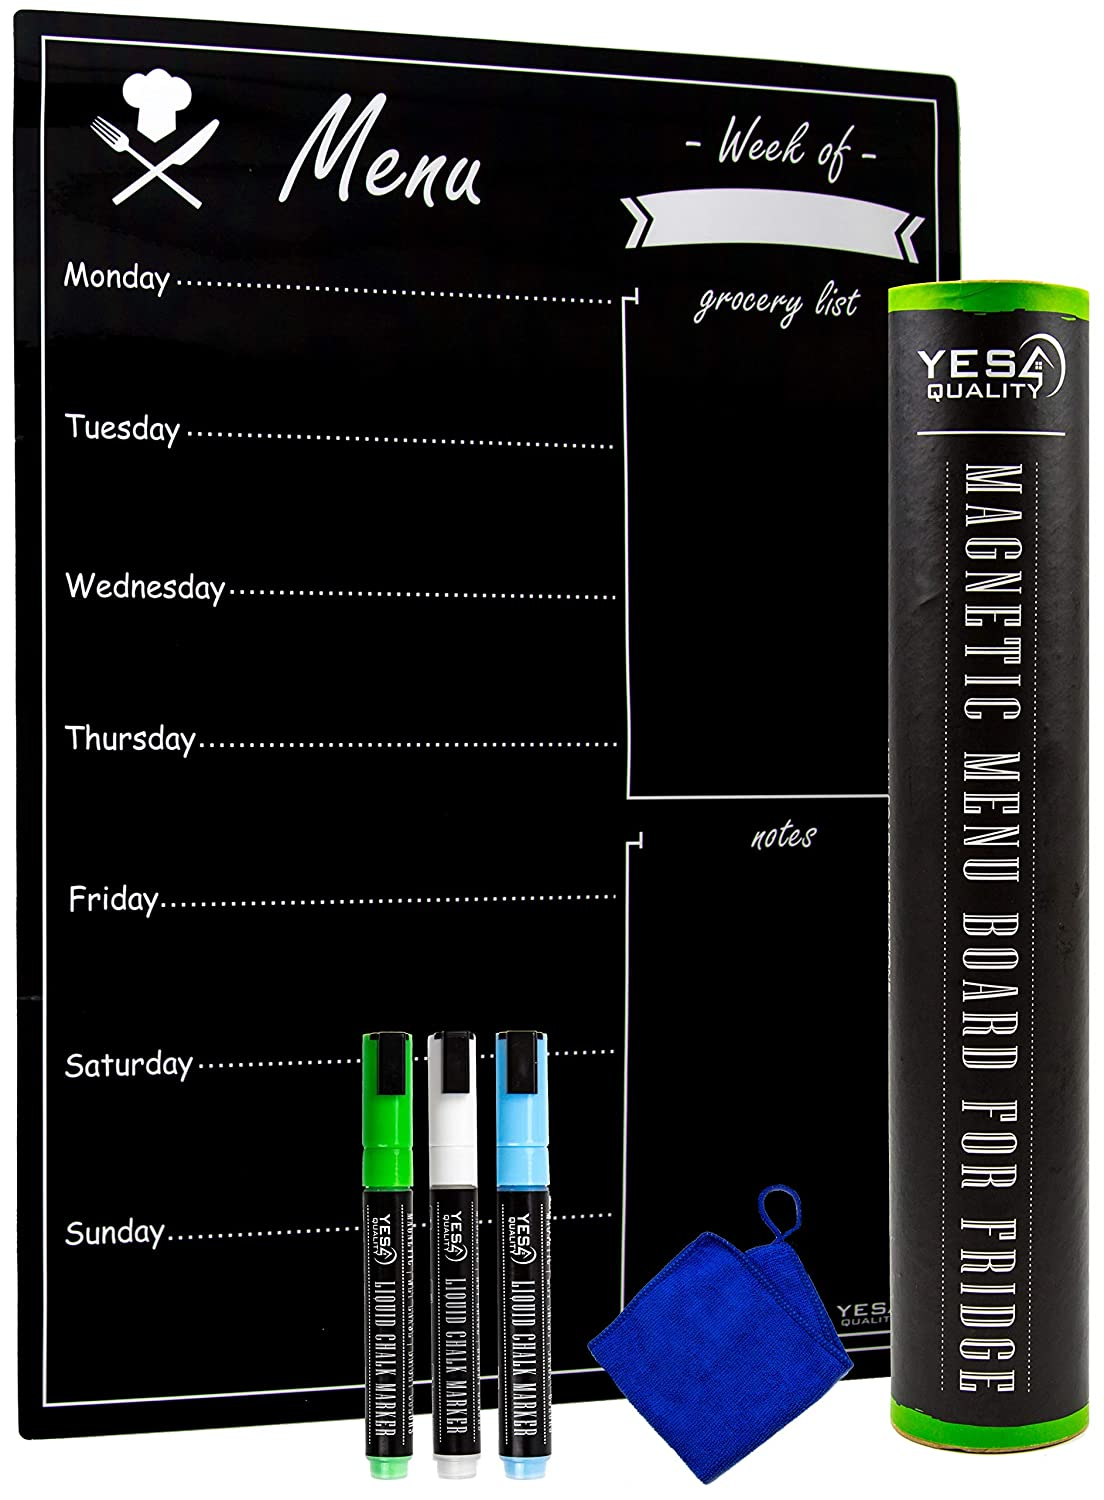 Magnetic Menu Board for Fridge with Easy-Erase Technology - Includes 3 Neon Chalk Markers and Eraser - Meal Planner Dry Erase Chalkboard